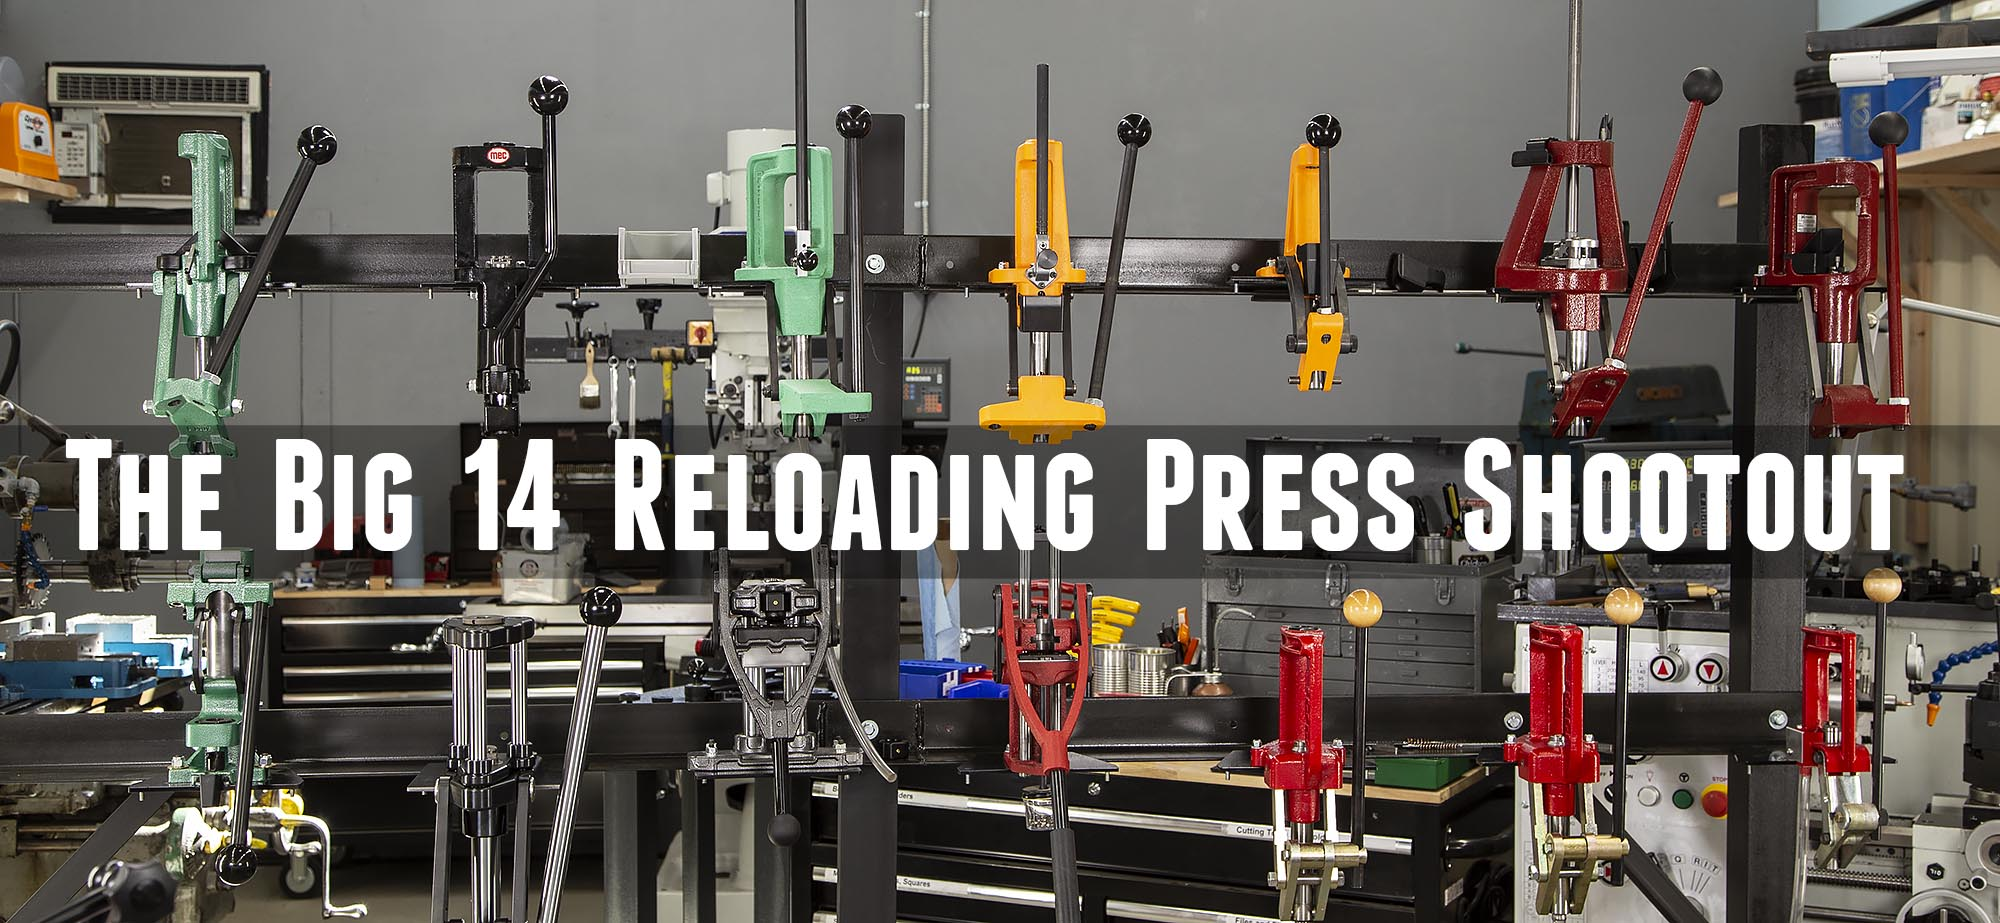 Fourteen Reloading Presses Compared: Single-Stage Shootout